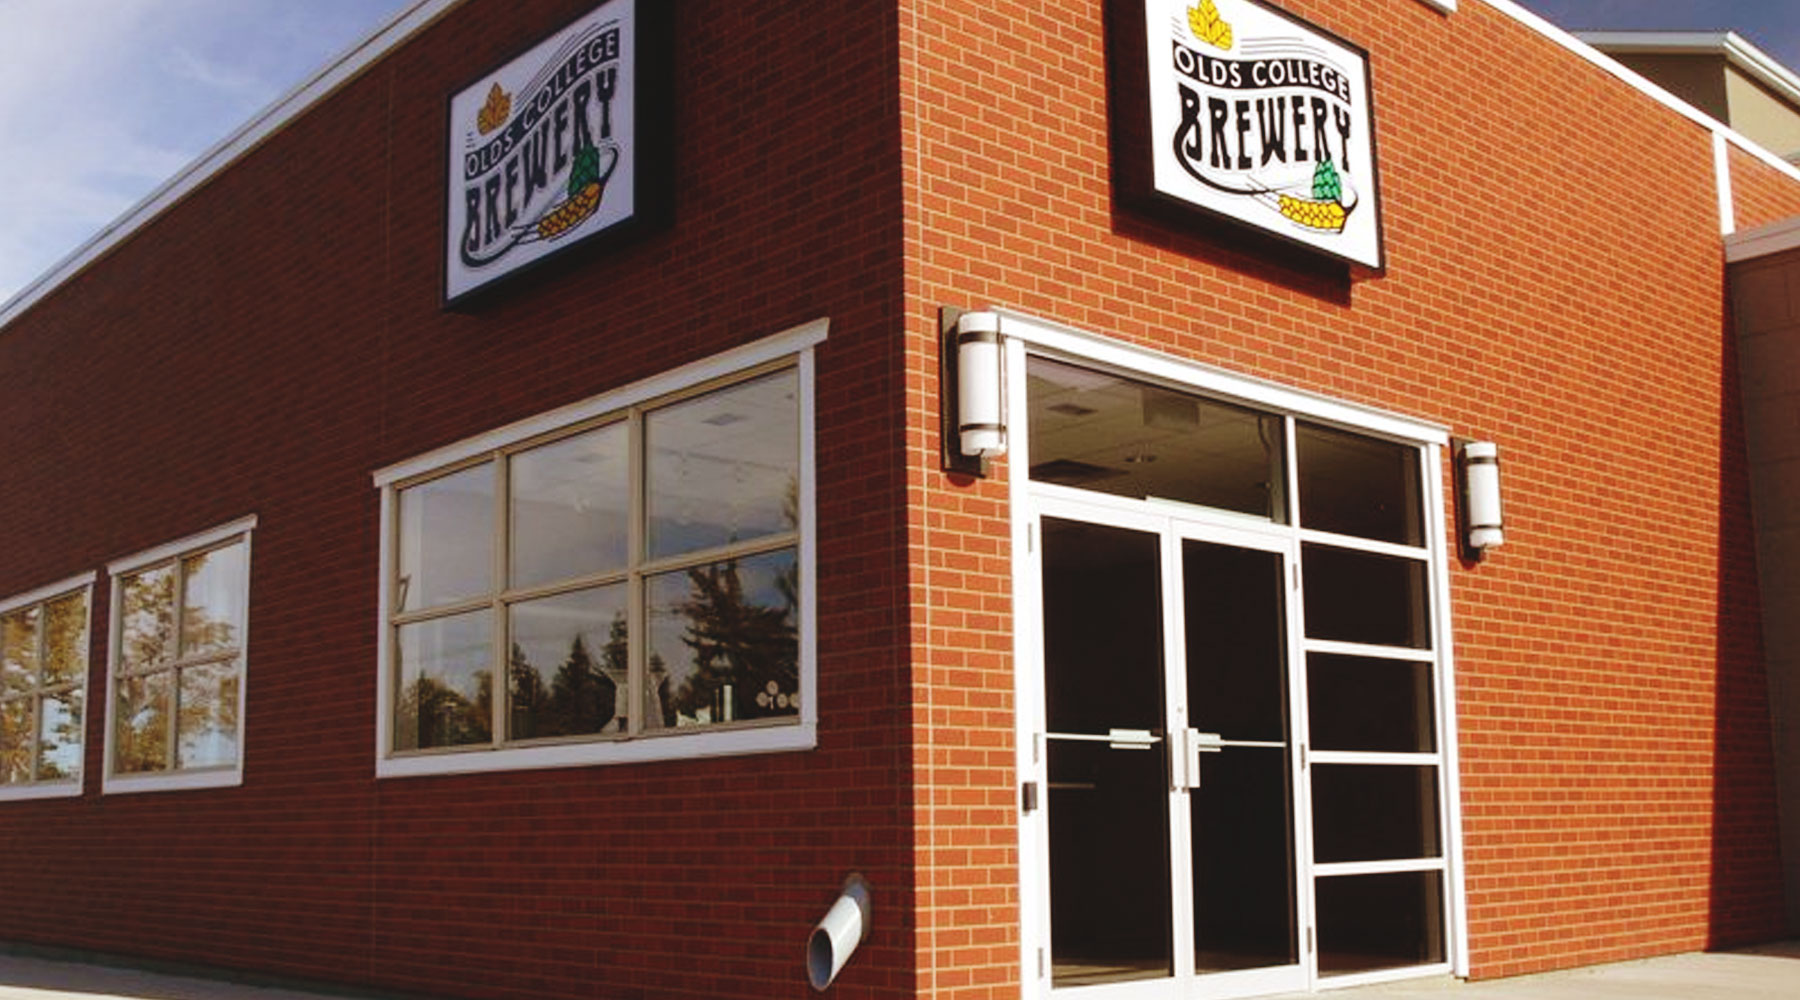 Olds College Brewery | Just Wine